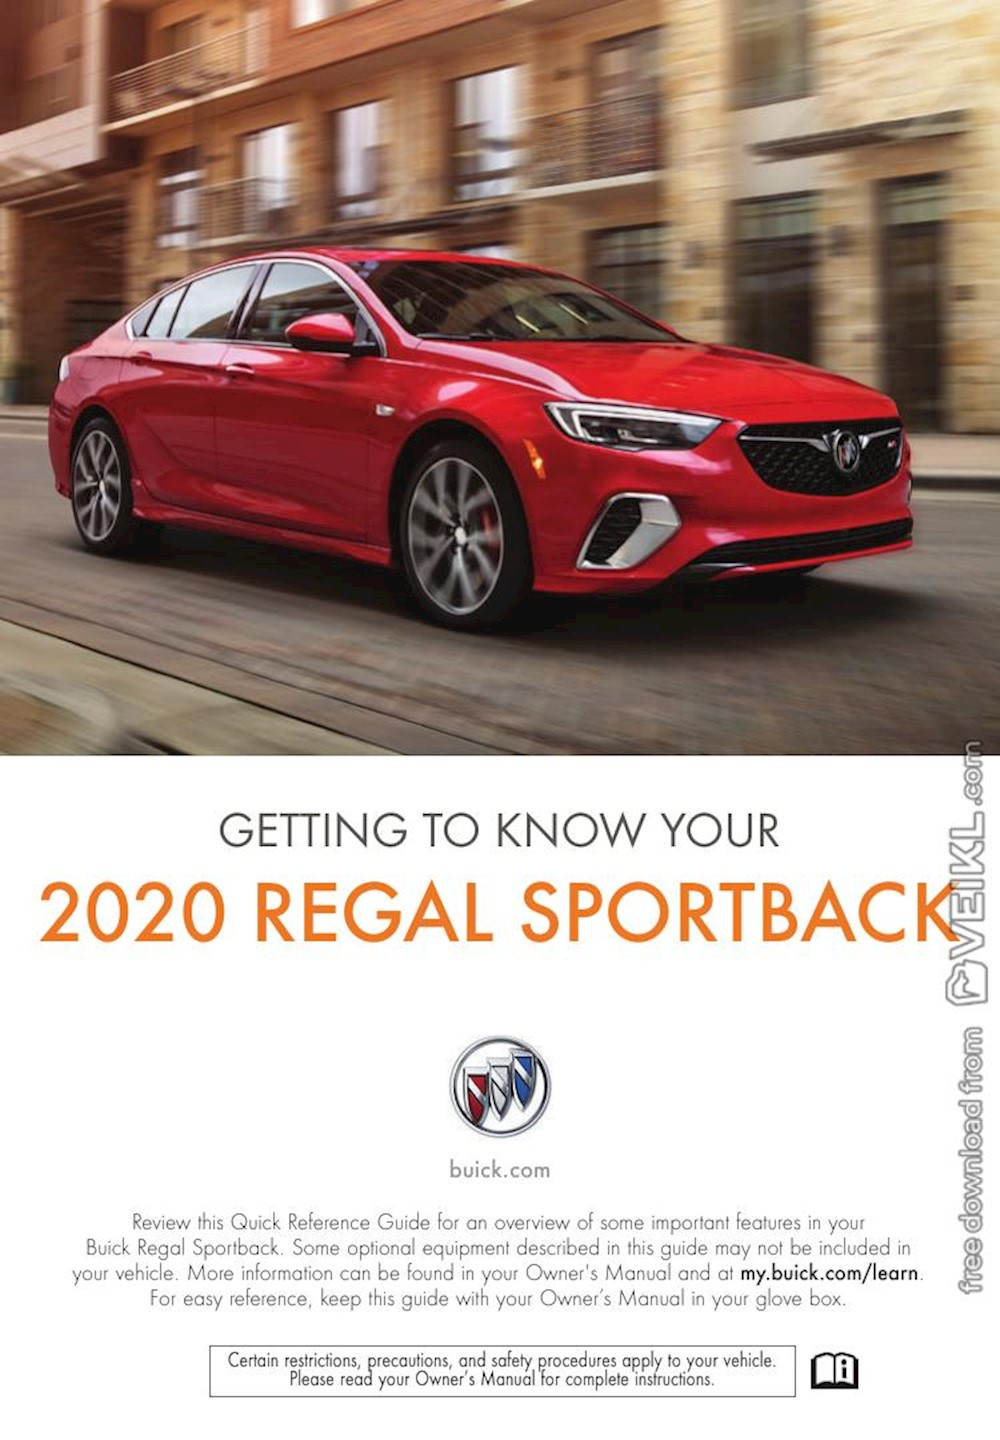 Buick Regal Sportback Getting To Know Your 2020 EN